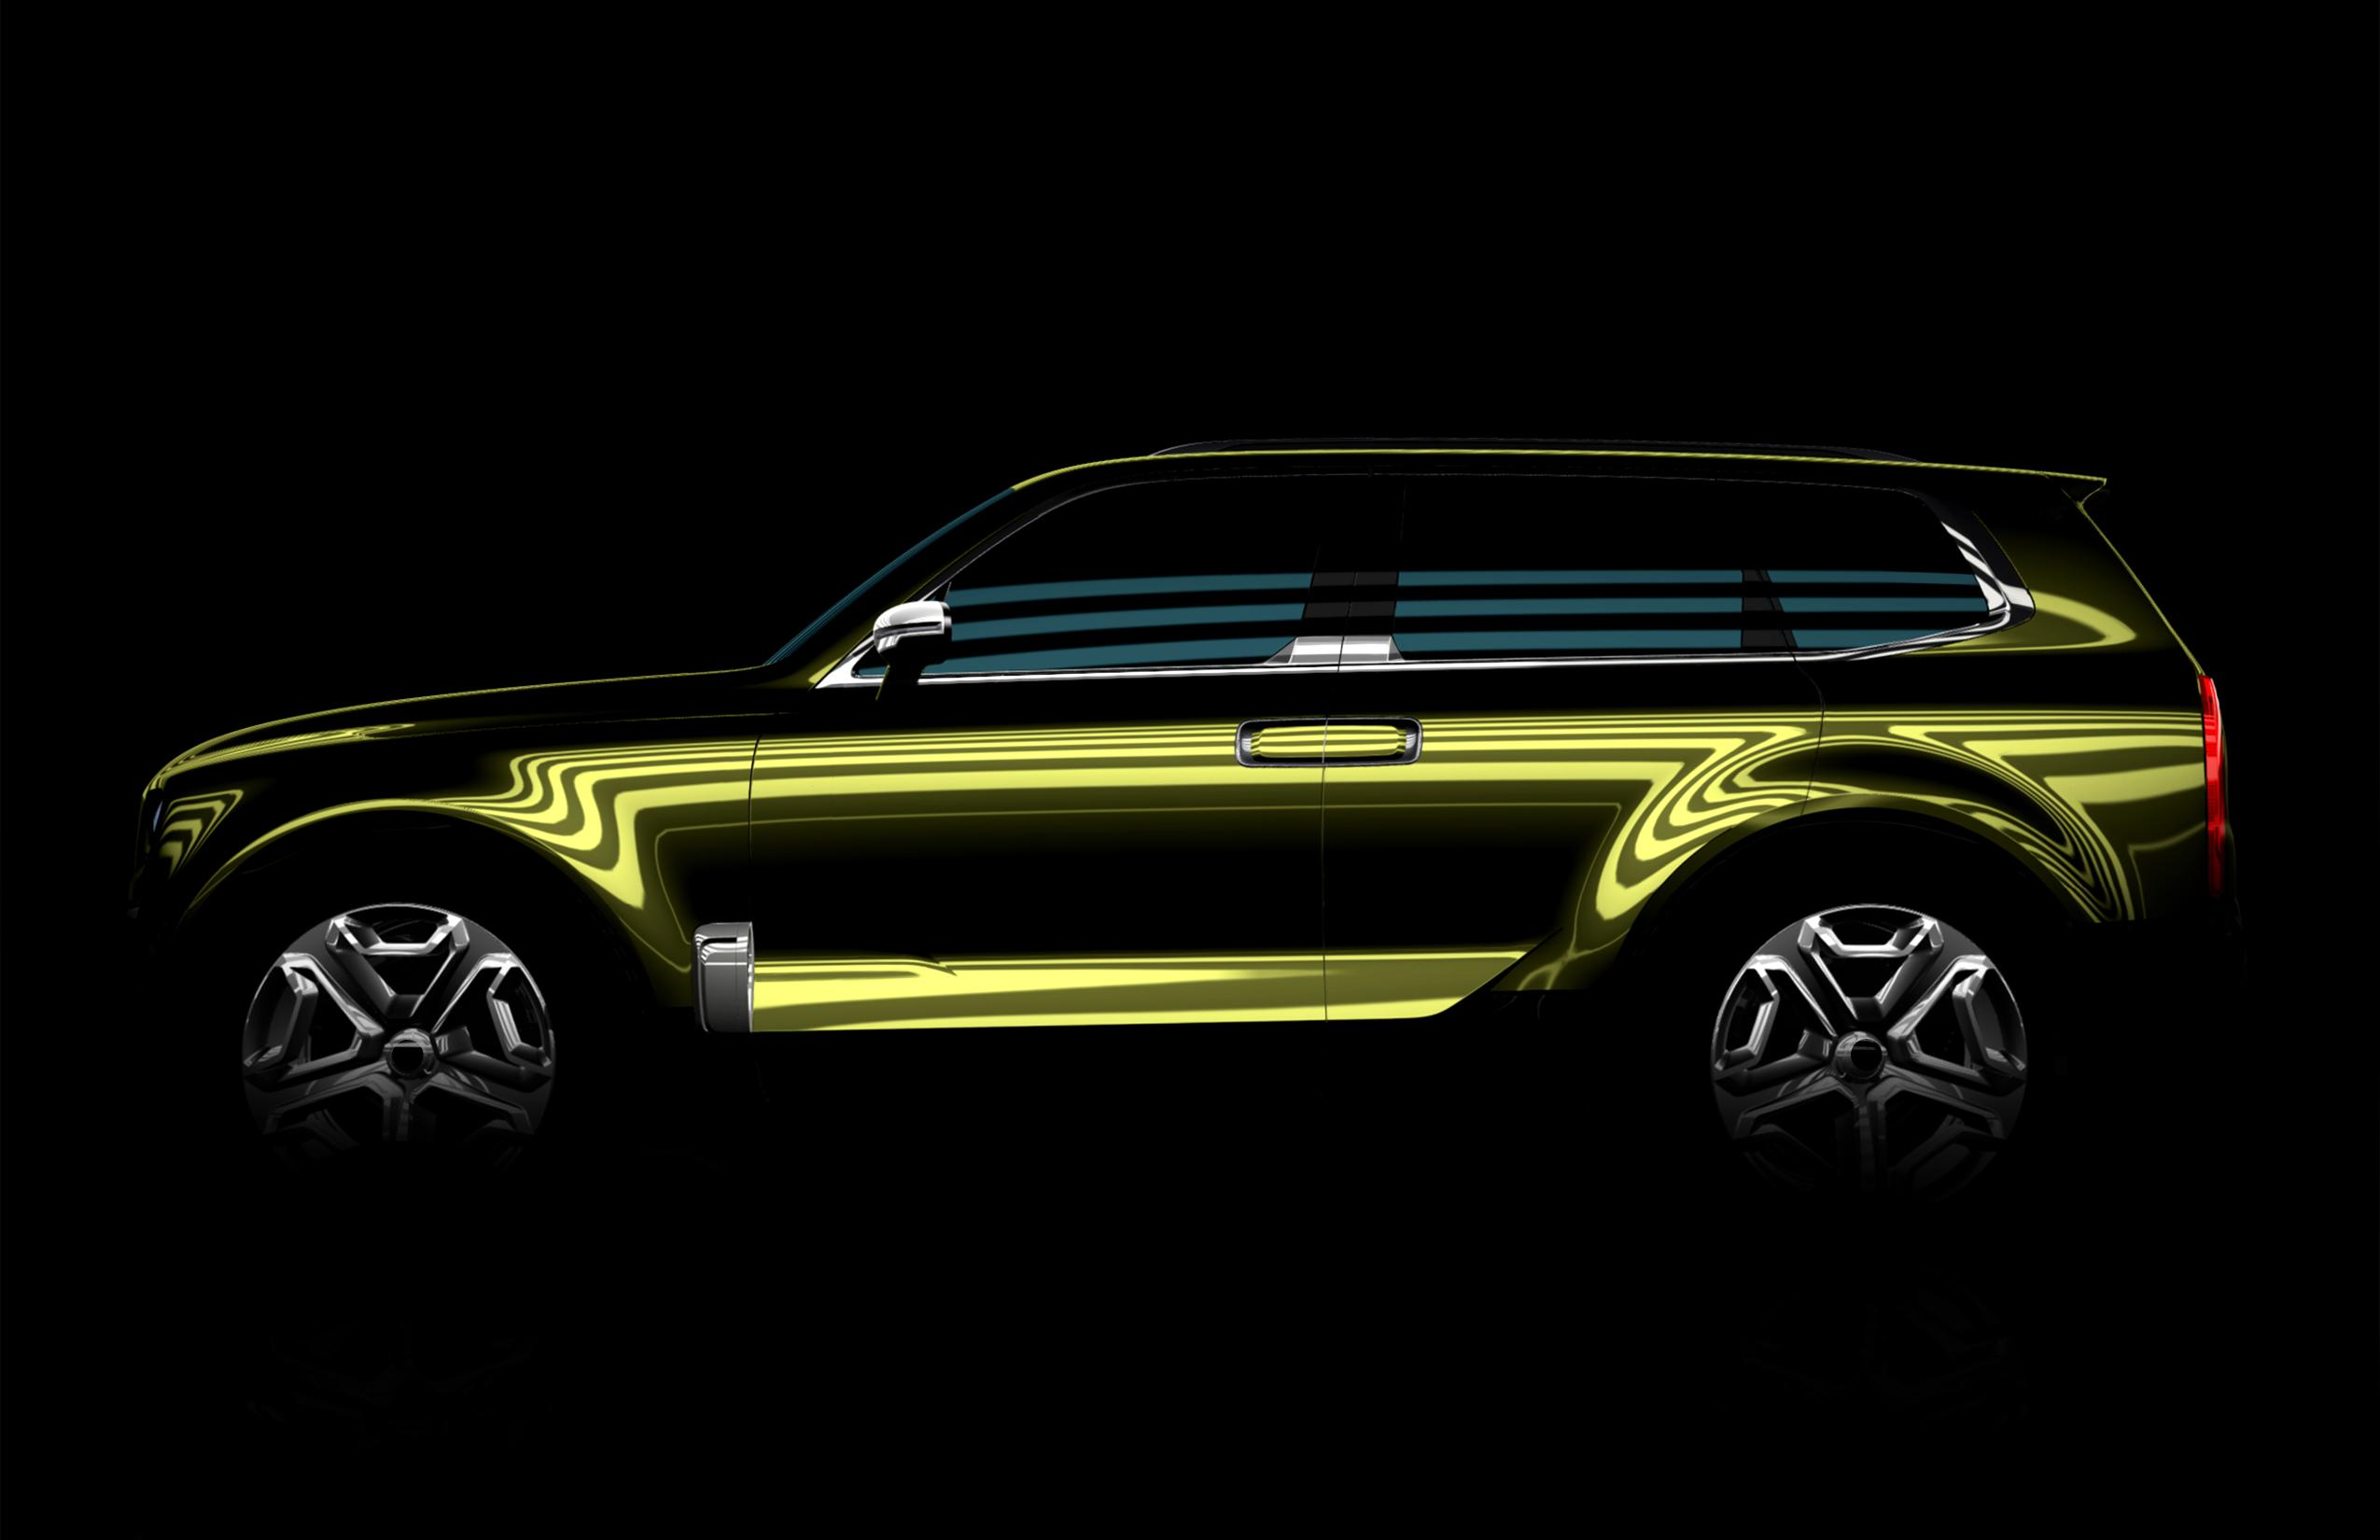 kia teases new suv concept for 2016 detroit auto show autoevolution. Black Bedroom Furniture Sets. Home Design Ideas